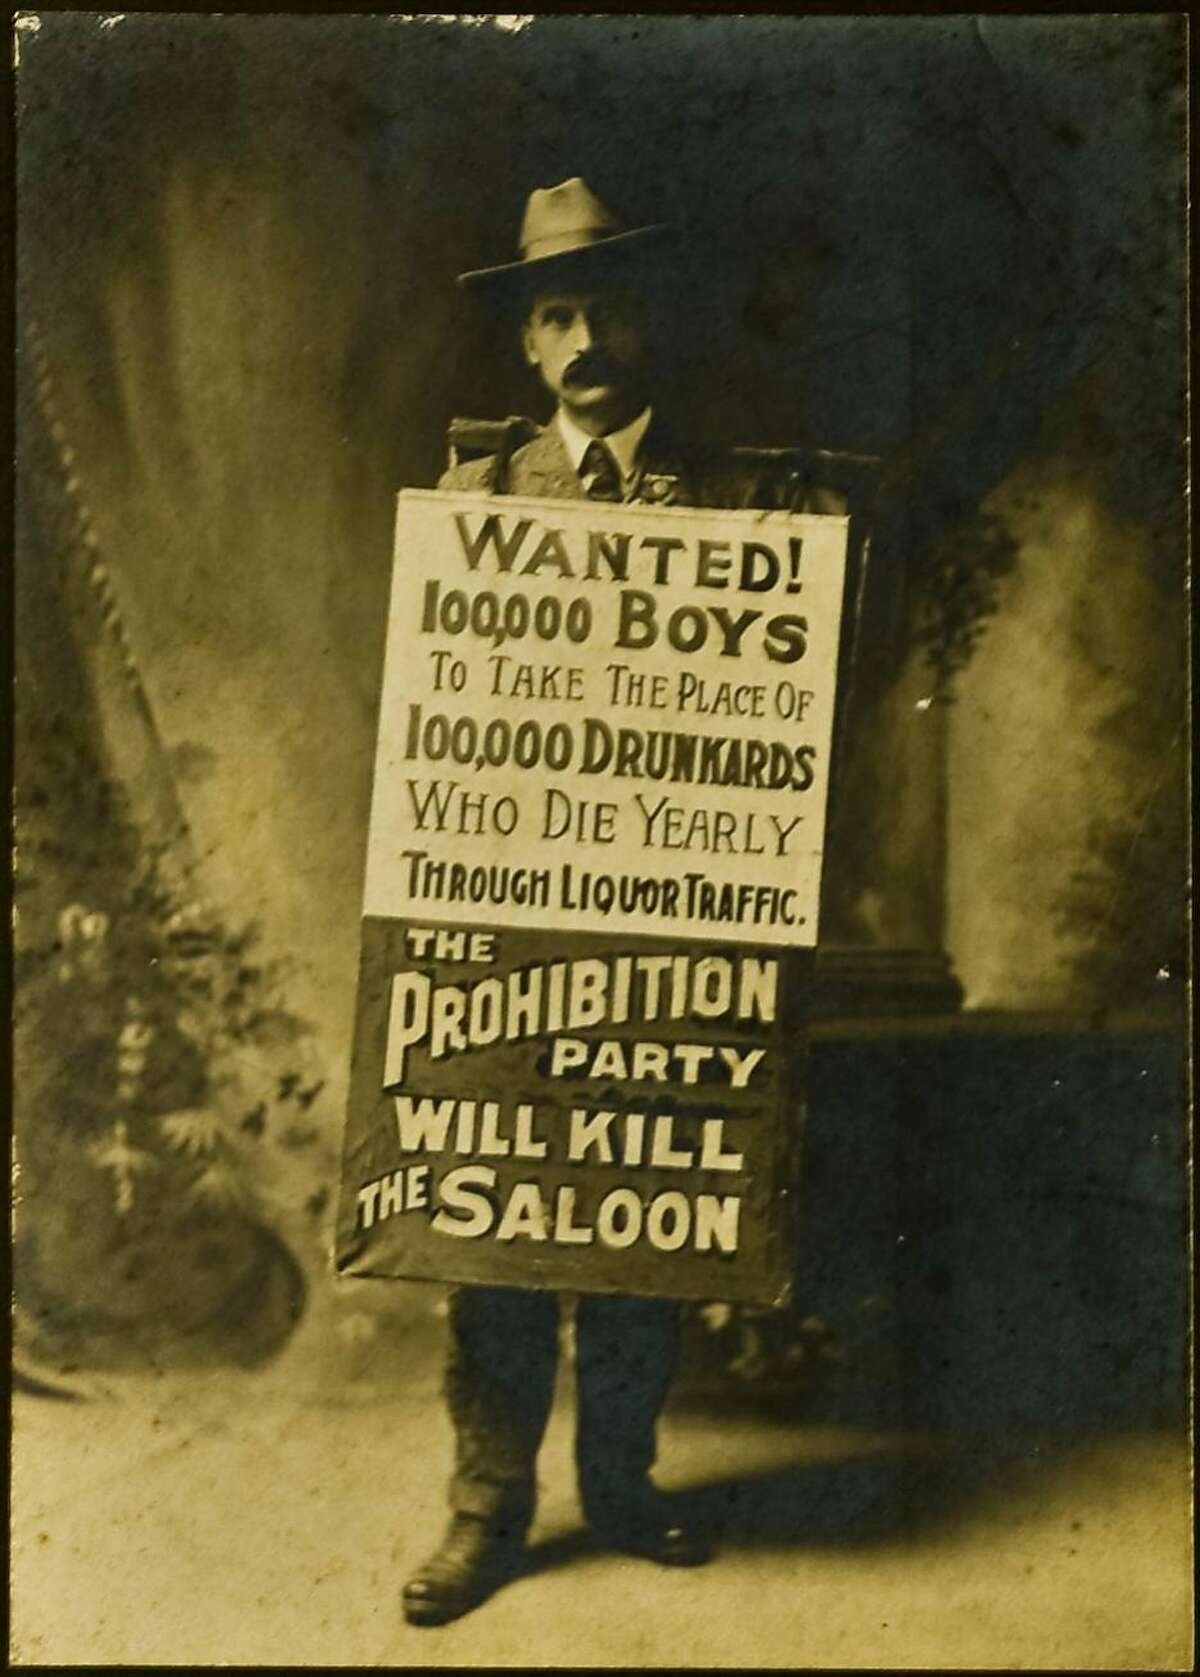 Undated portrait from the prohibition era in San Francisco.